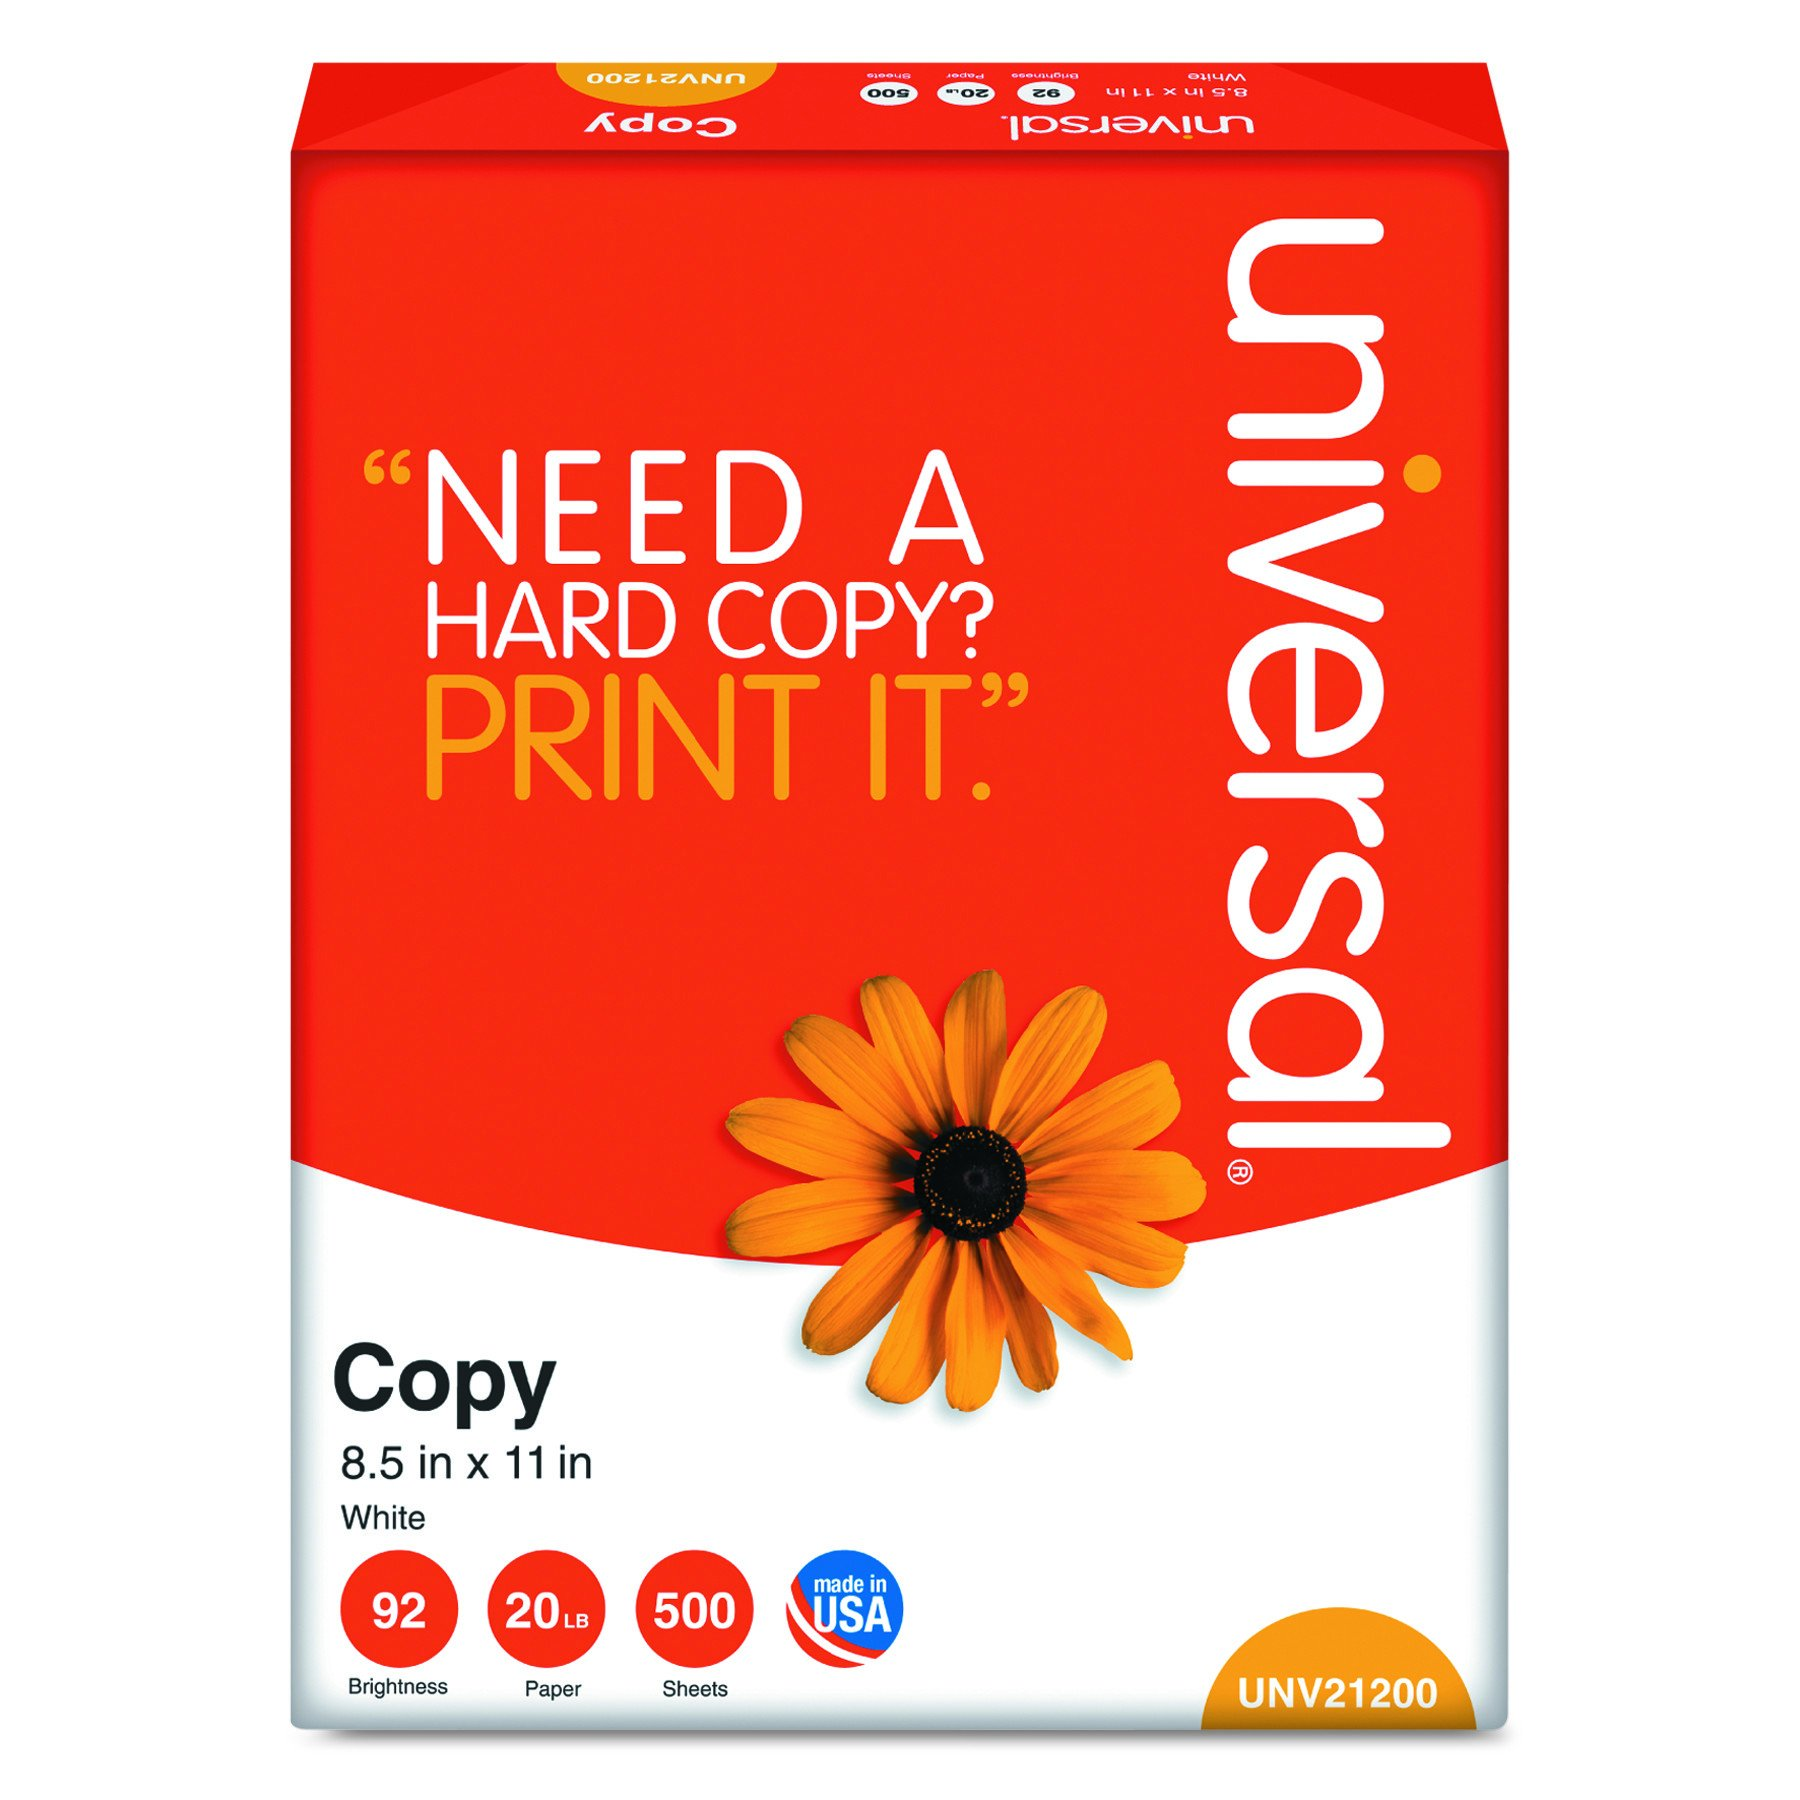 Universal 21200 Copy Paper, 92 Brightness, 20lb, 8-1/2 x 11, White (Case of 5000 Sheets)